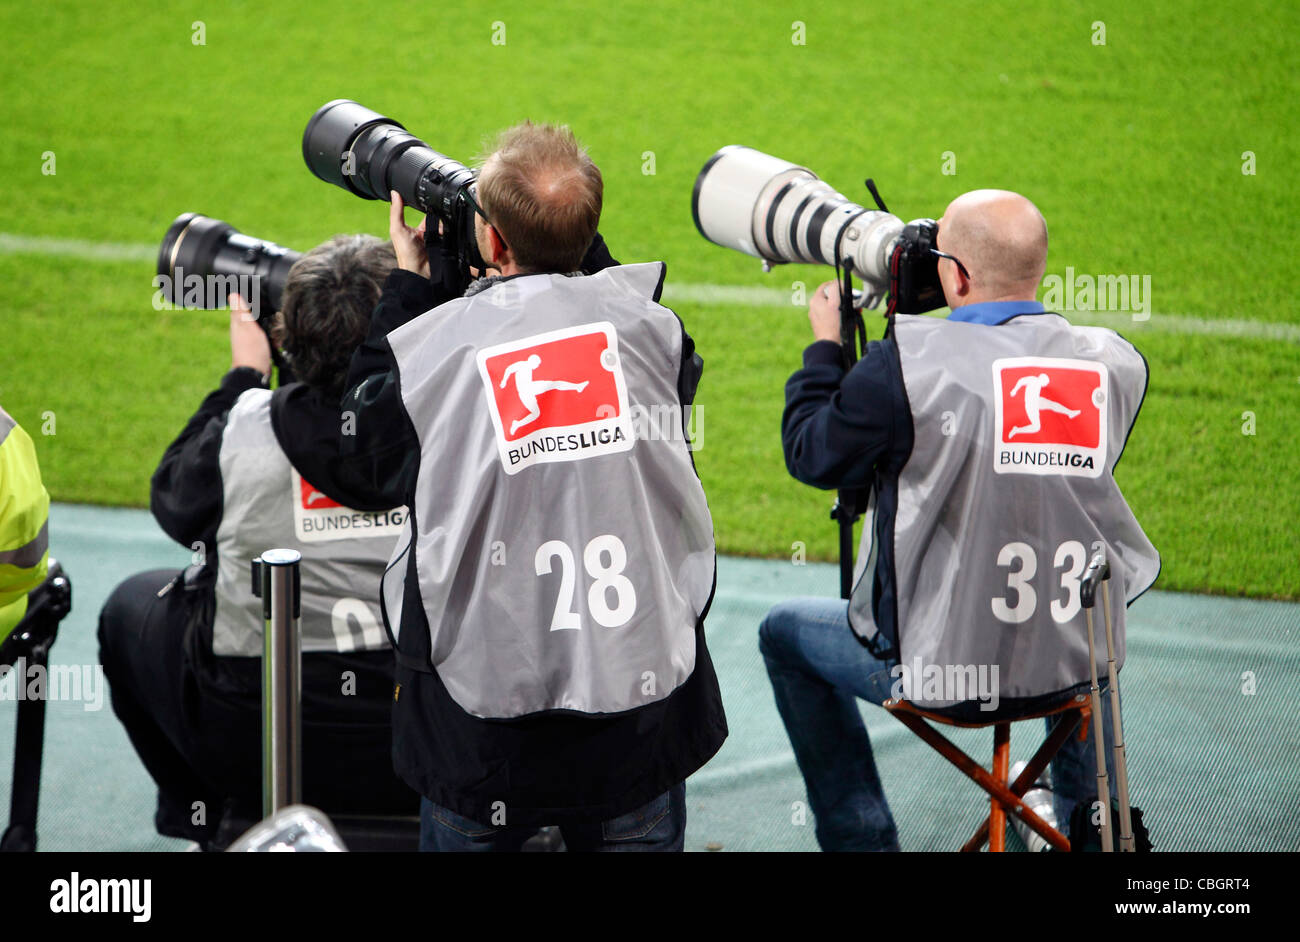 Press photographers during a football game in a sports stadium, with long telephoto lenses. - Stock Image